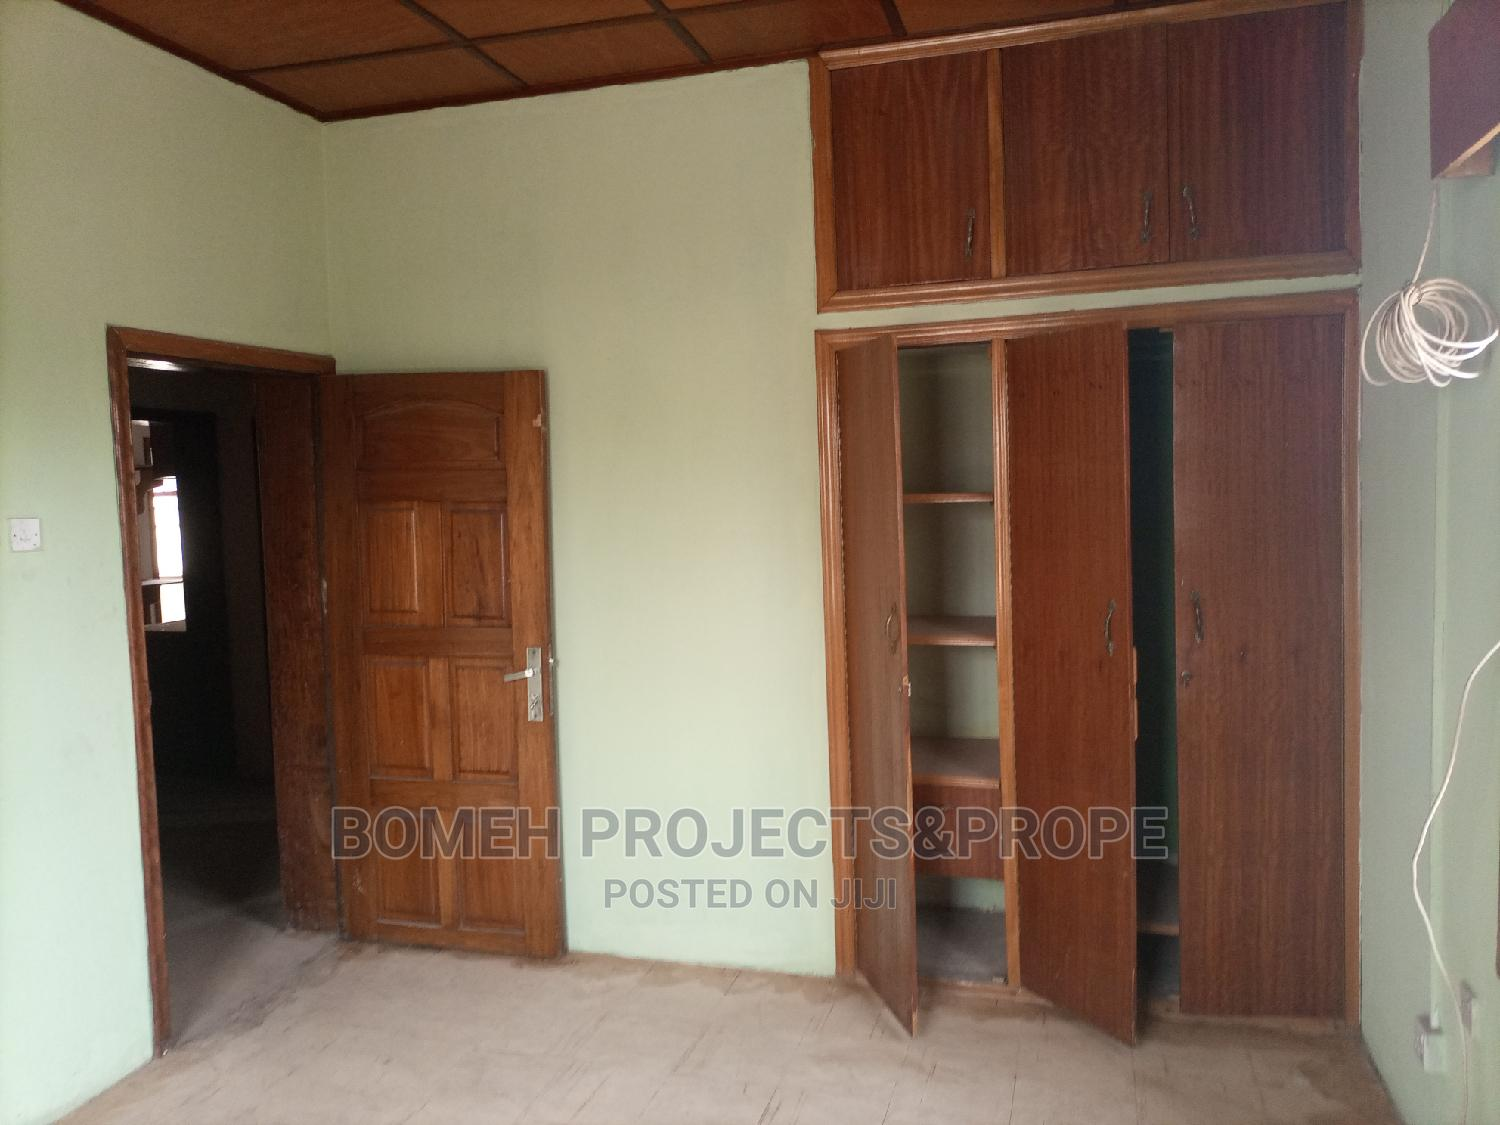 2 Bedroom in Wuse Zone for Rent | Houses & Apartments For Rent for sale in Wuse, Abuja (FCT) State, Nigeria